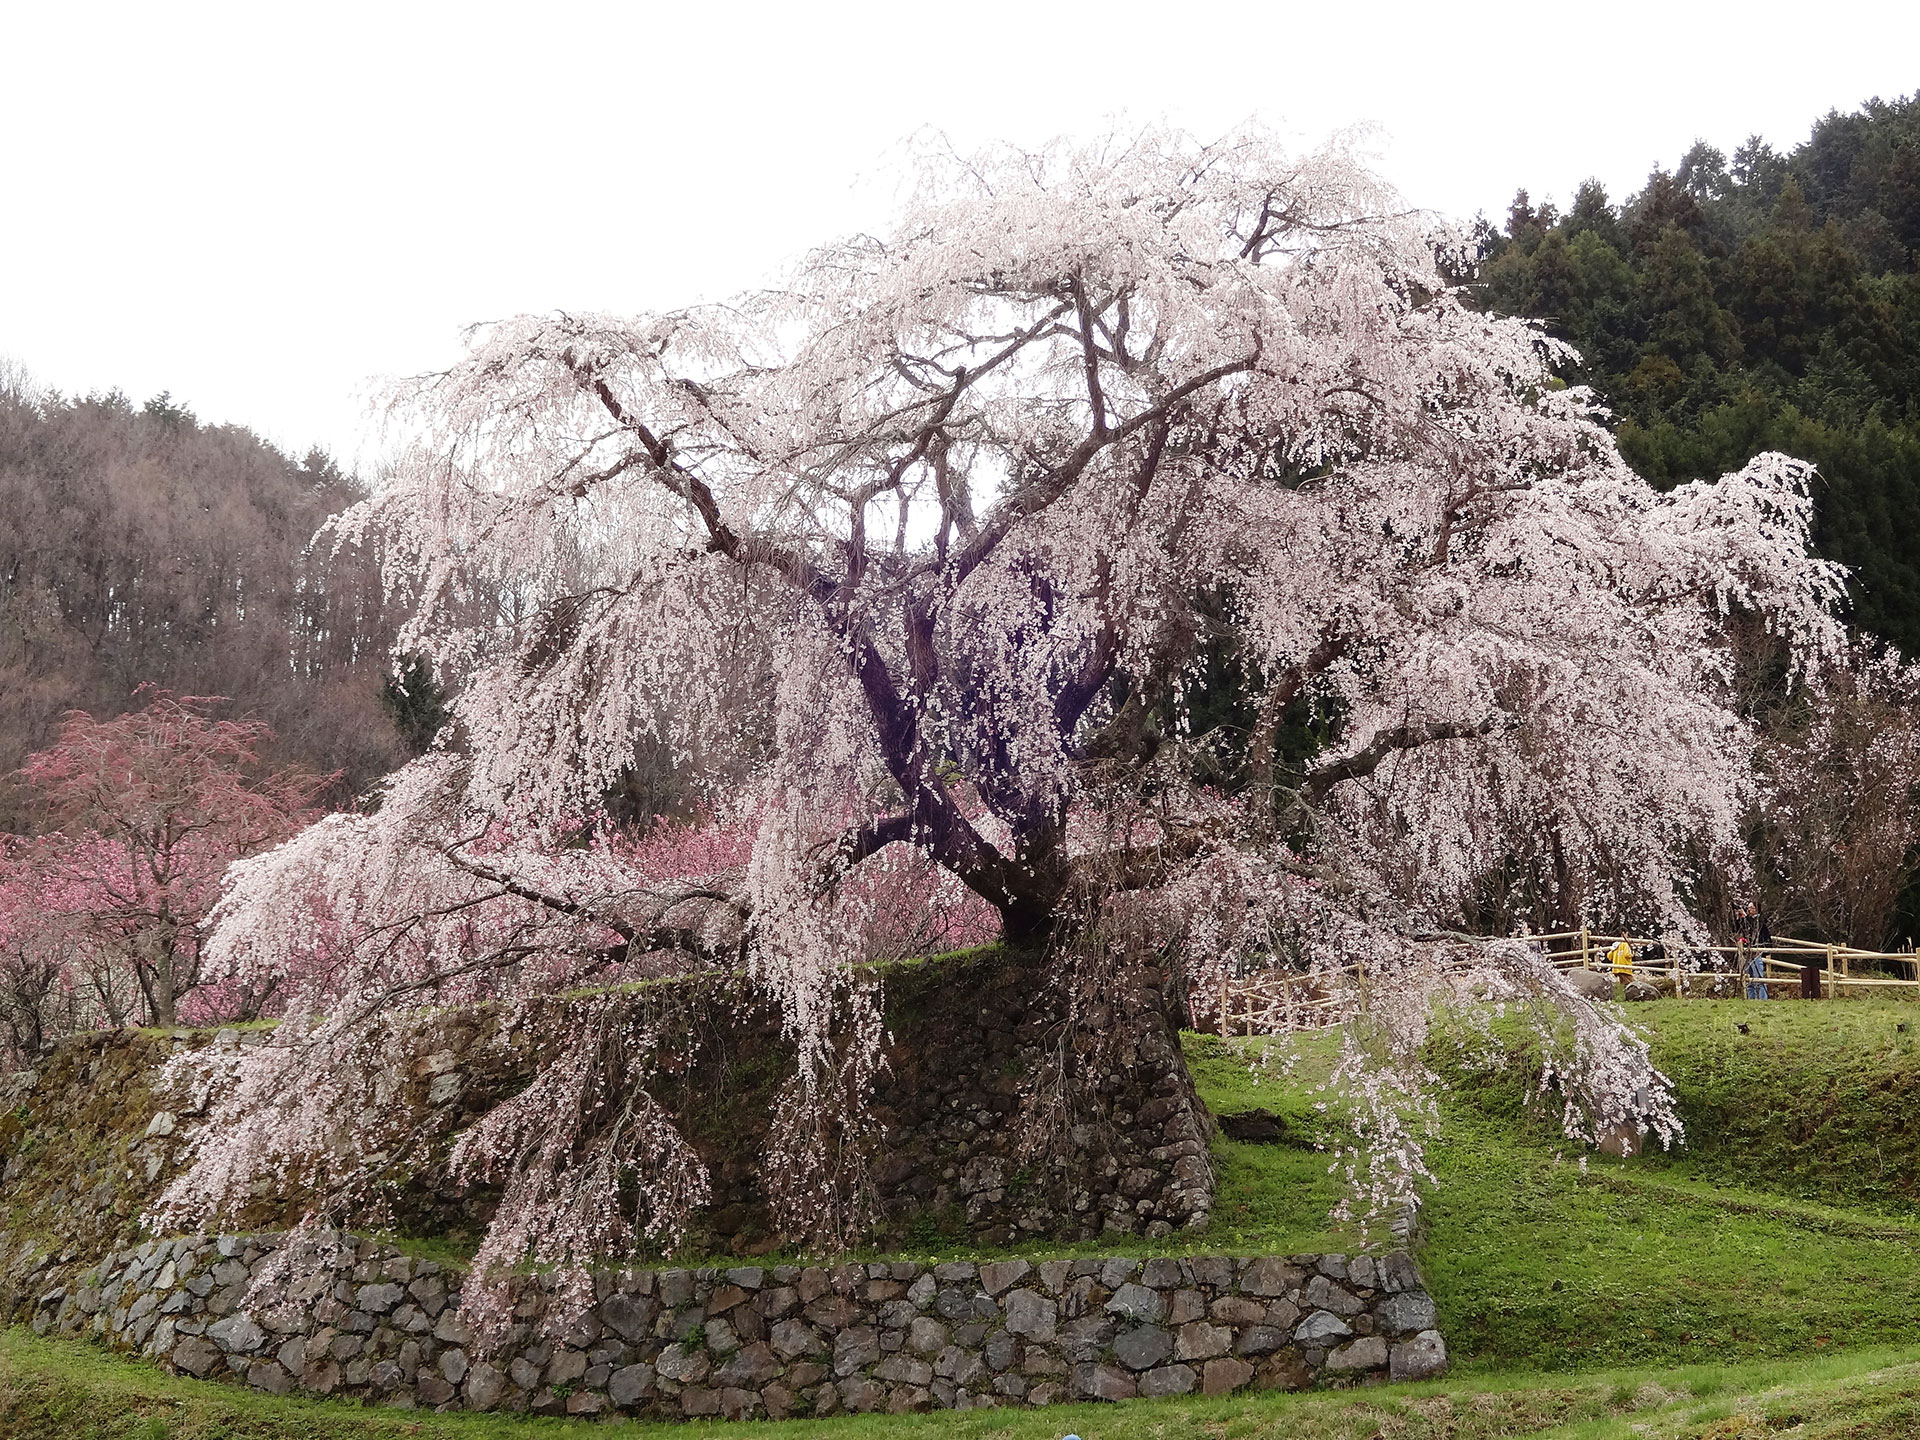 Japan: 300-year-old Weeping Cherry Blossom Tree With Acient Forklore